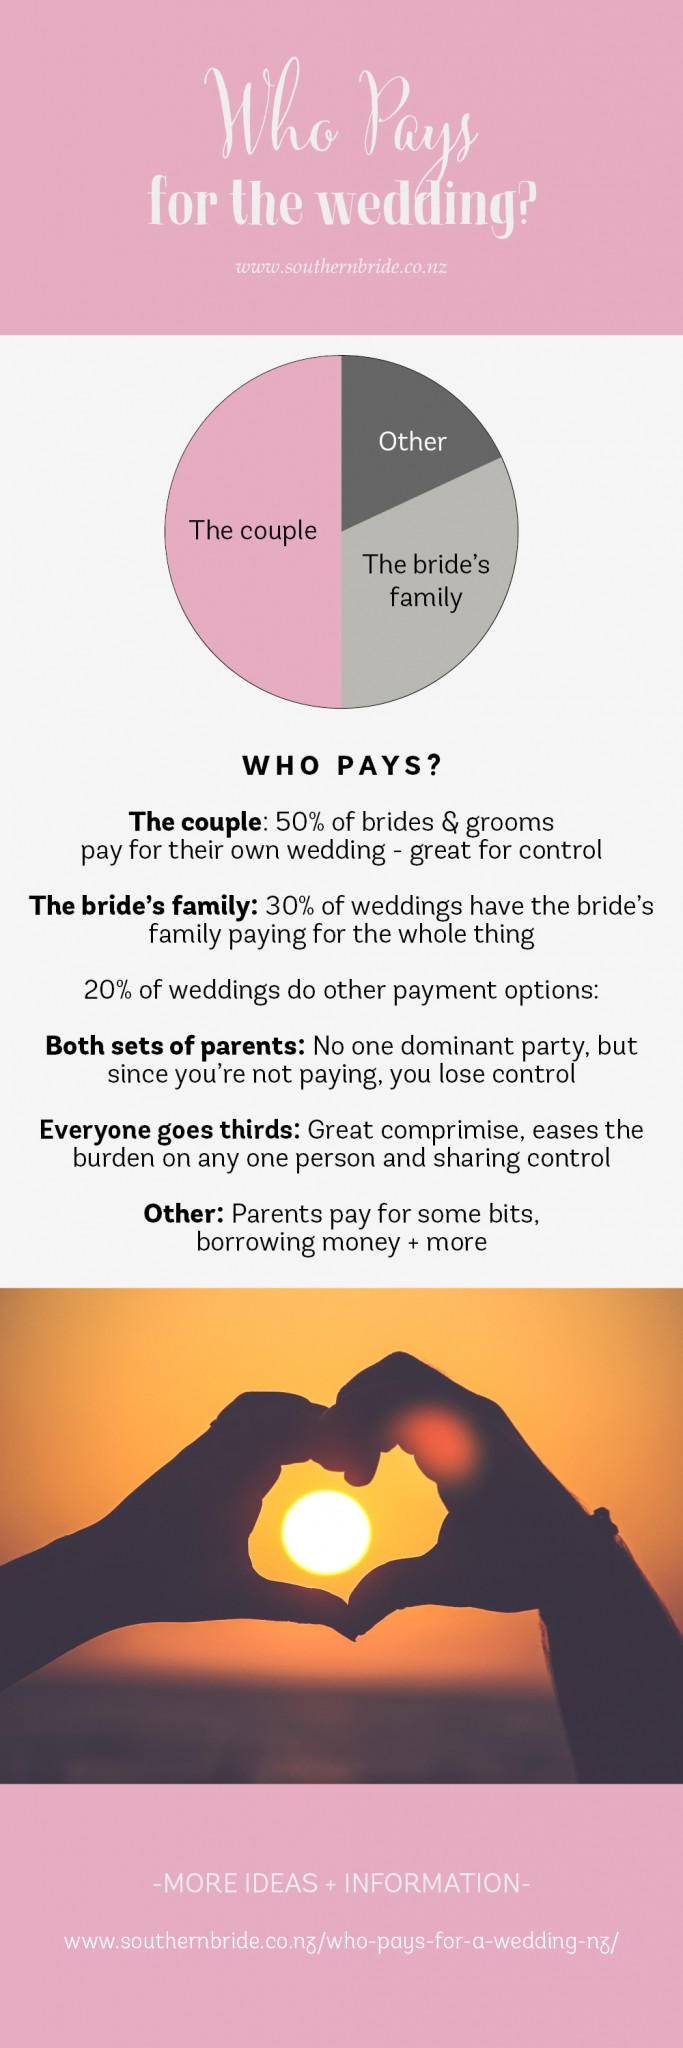 Who pays for a wedding in NZ - bride and groom parents or both